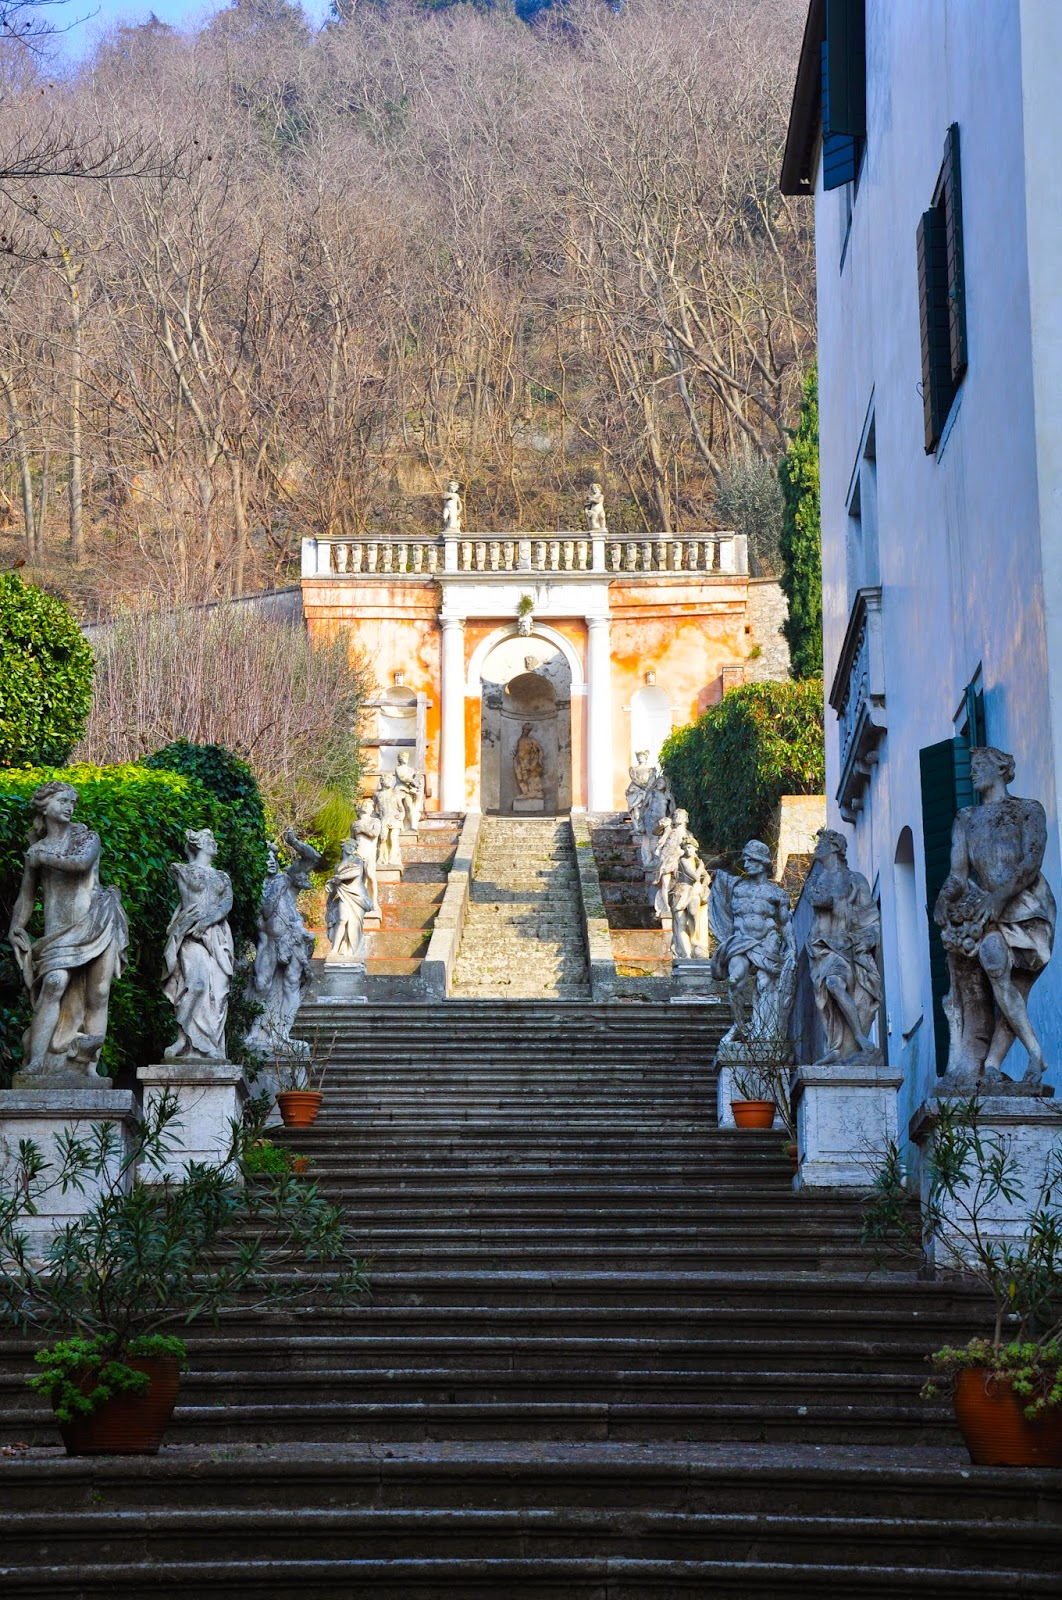 The stairs of the Villa dei Nanni in Monselice, Euganean Hills, Veneto, Italy - www.rossiwrites.com